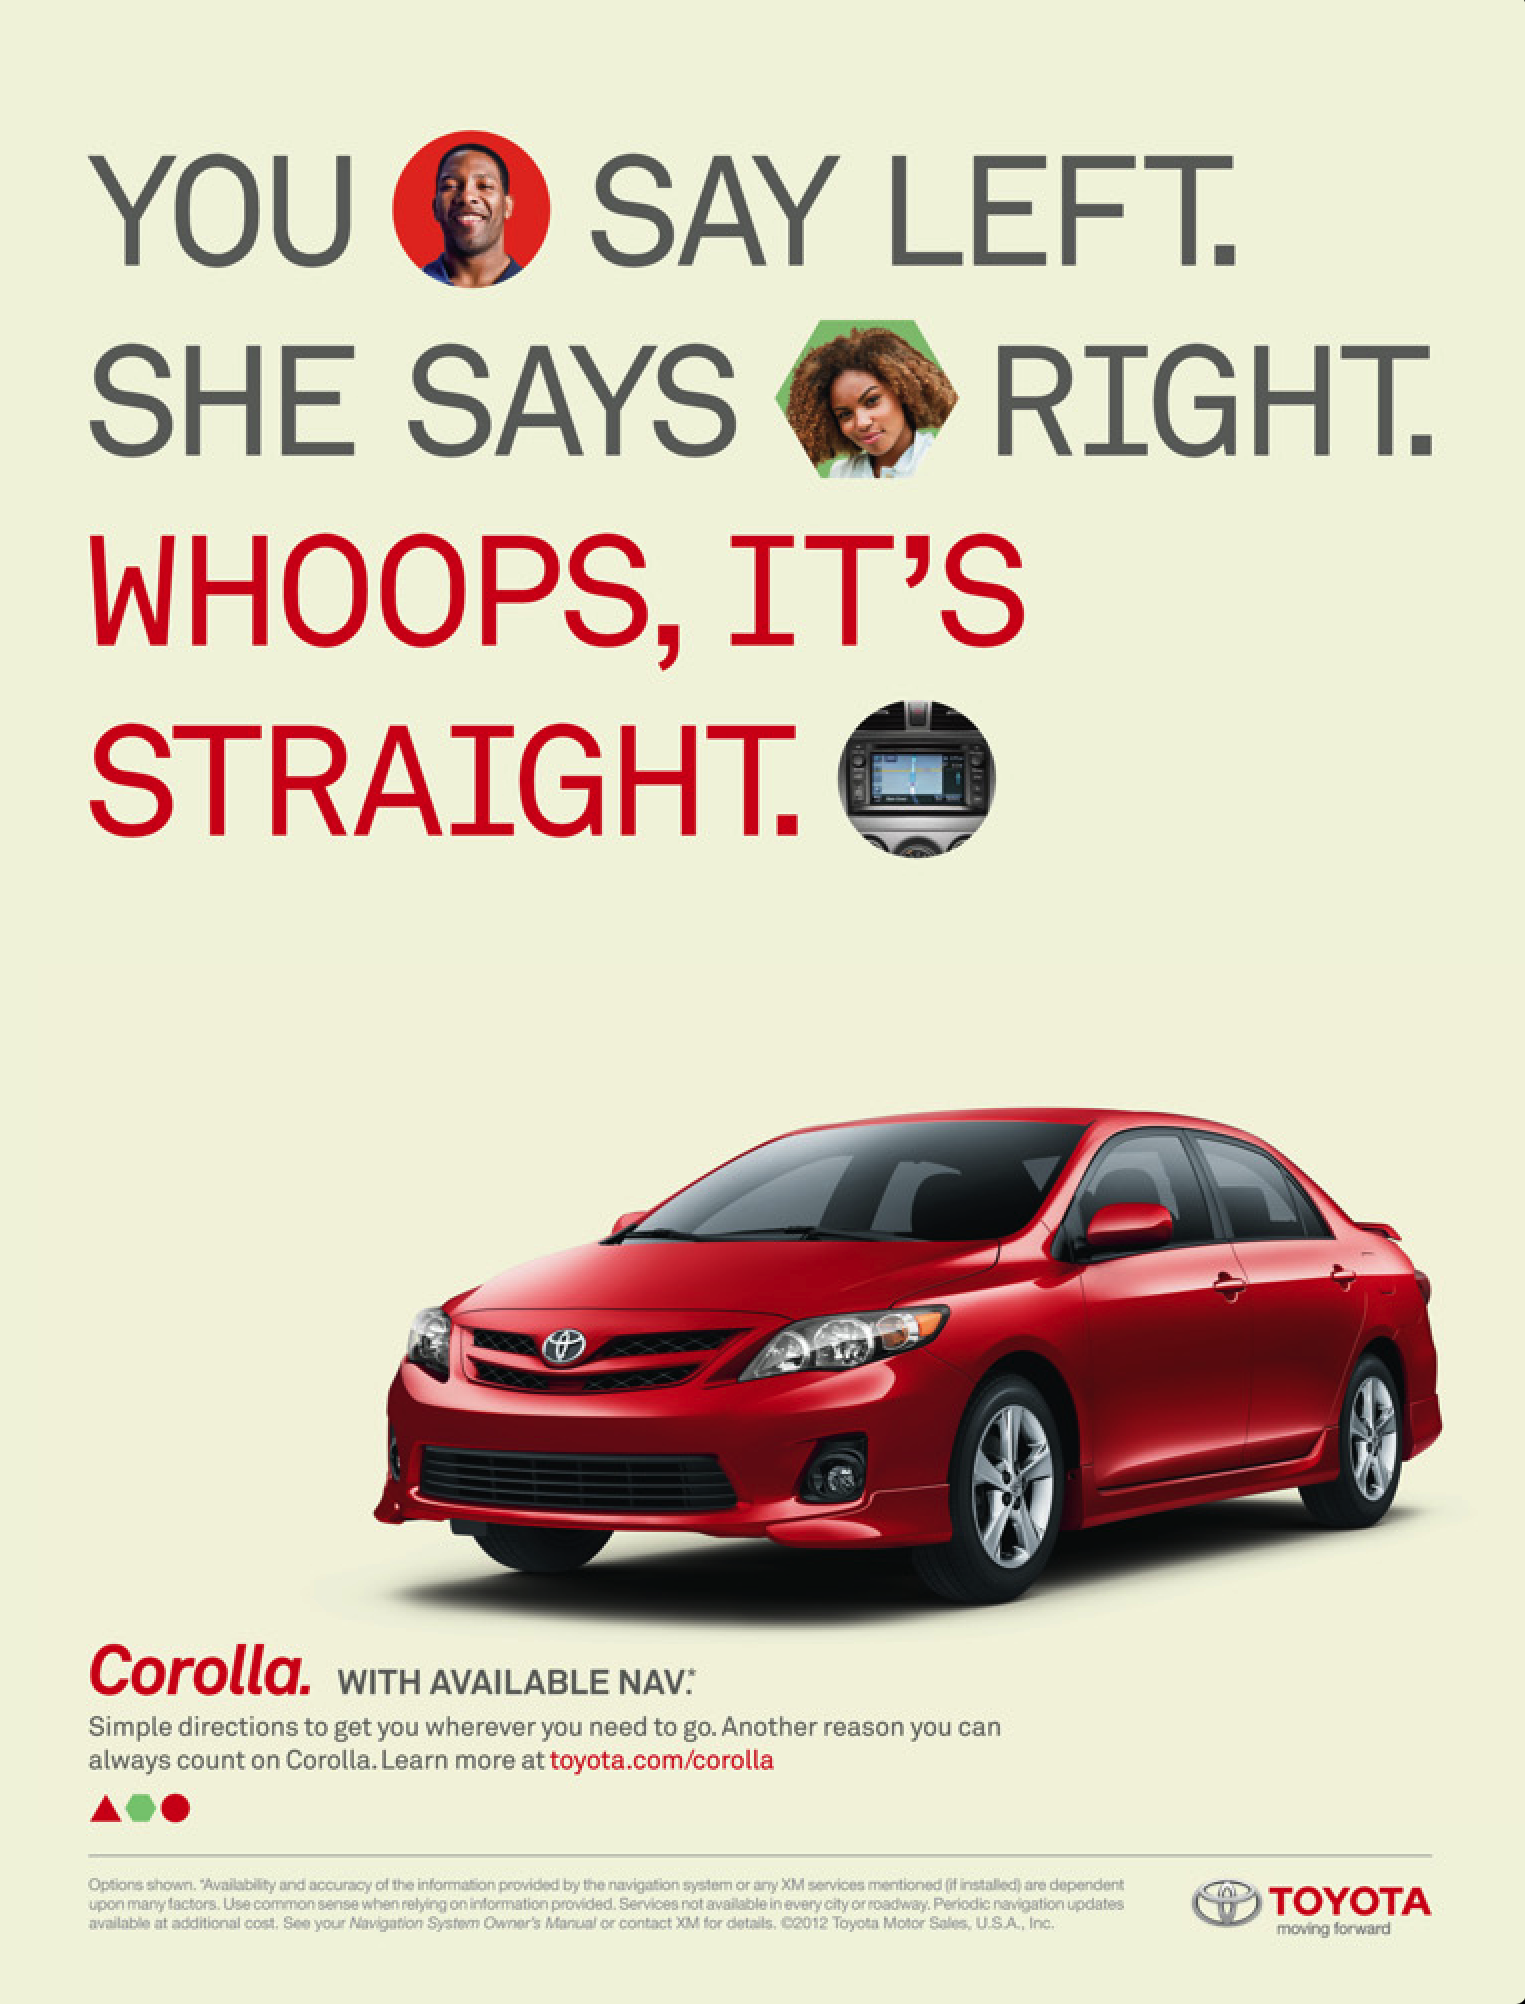 Pin by Steve Machesney on car ads 2 | Toyota corolla, Toyota